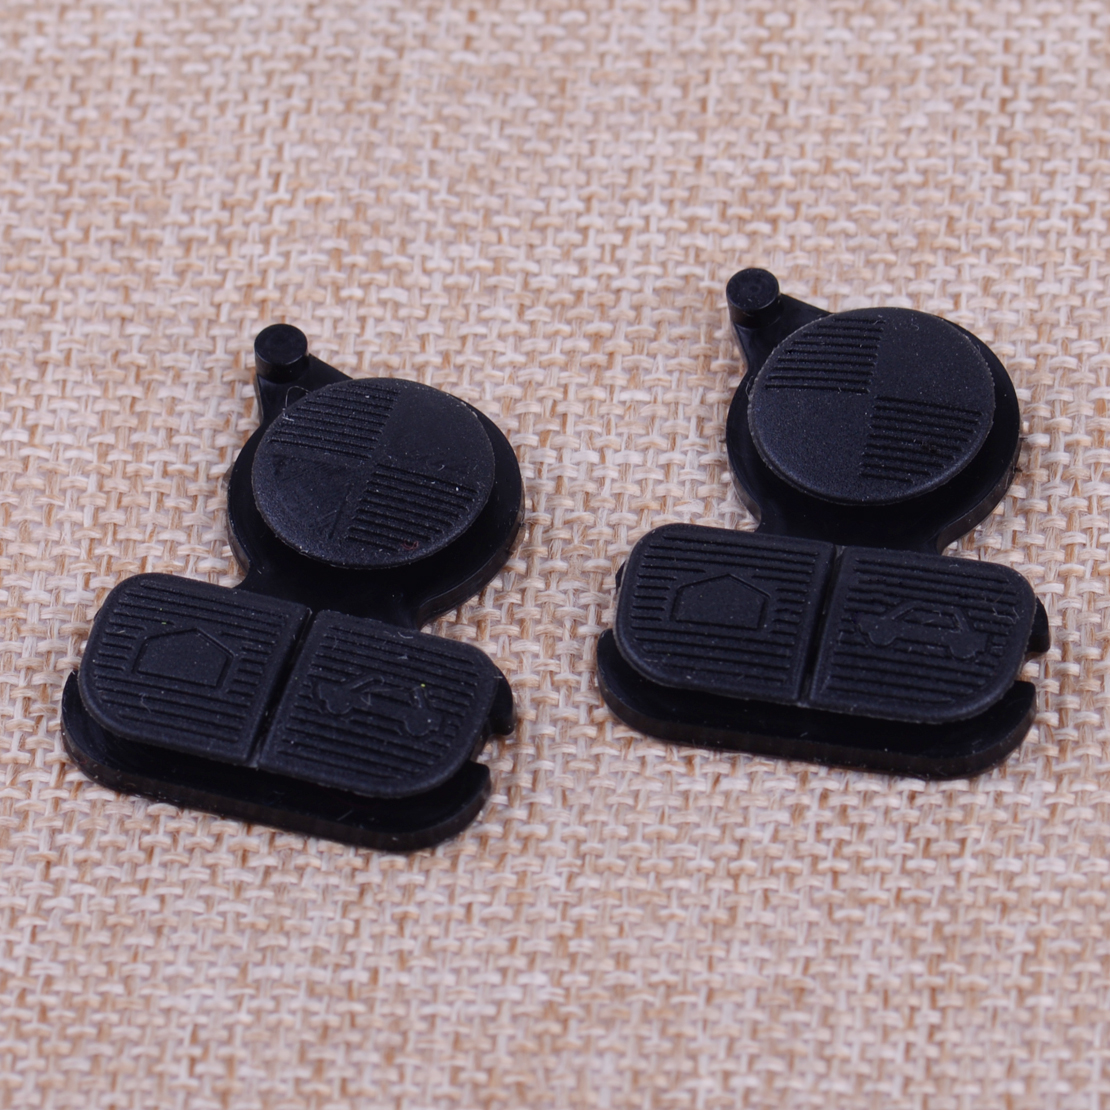 2pcs Auto Remote Key 3 Buttons Pad Replacement Fit For Bmw